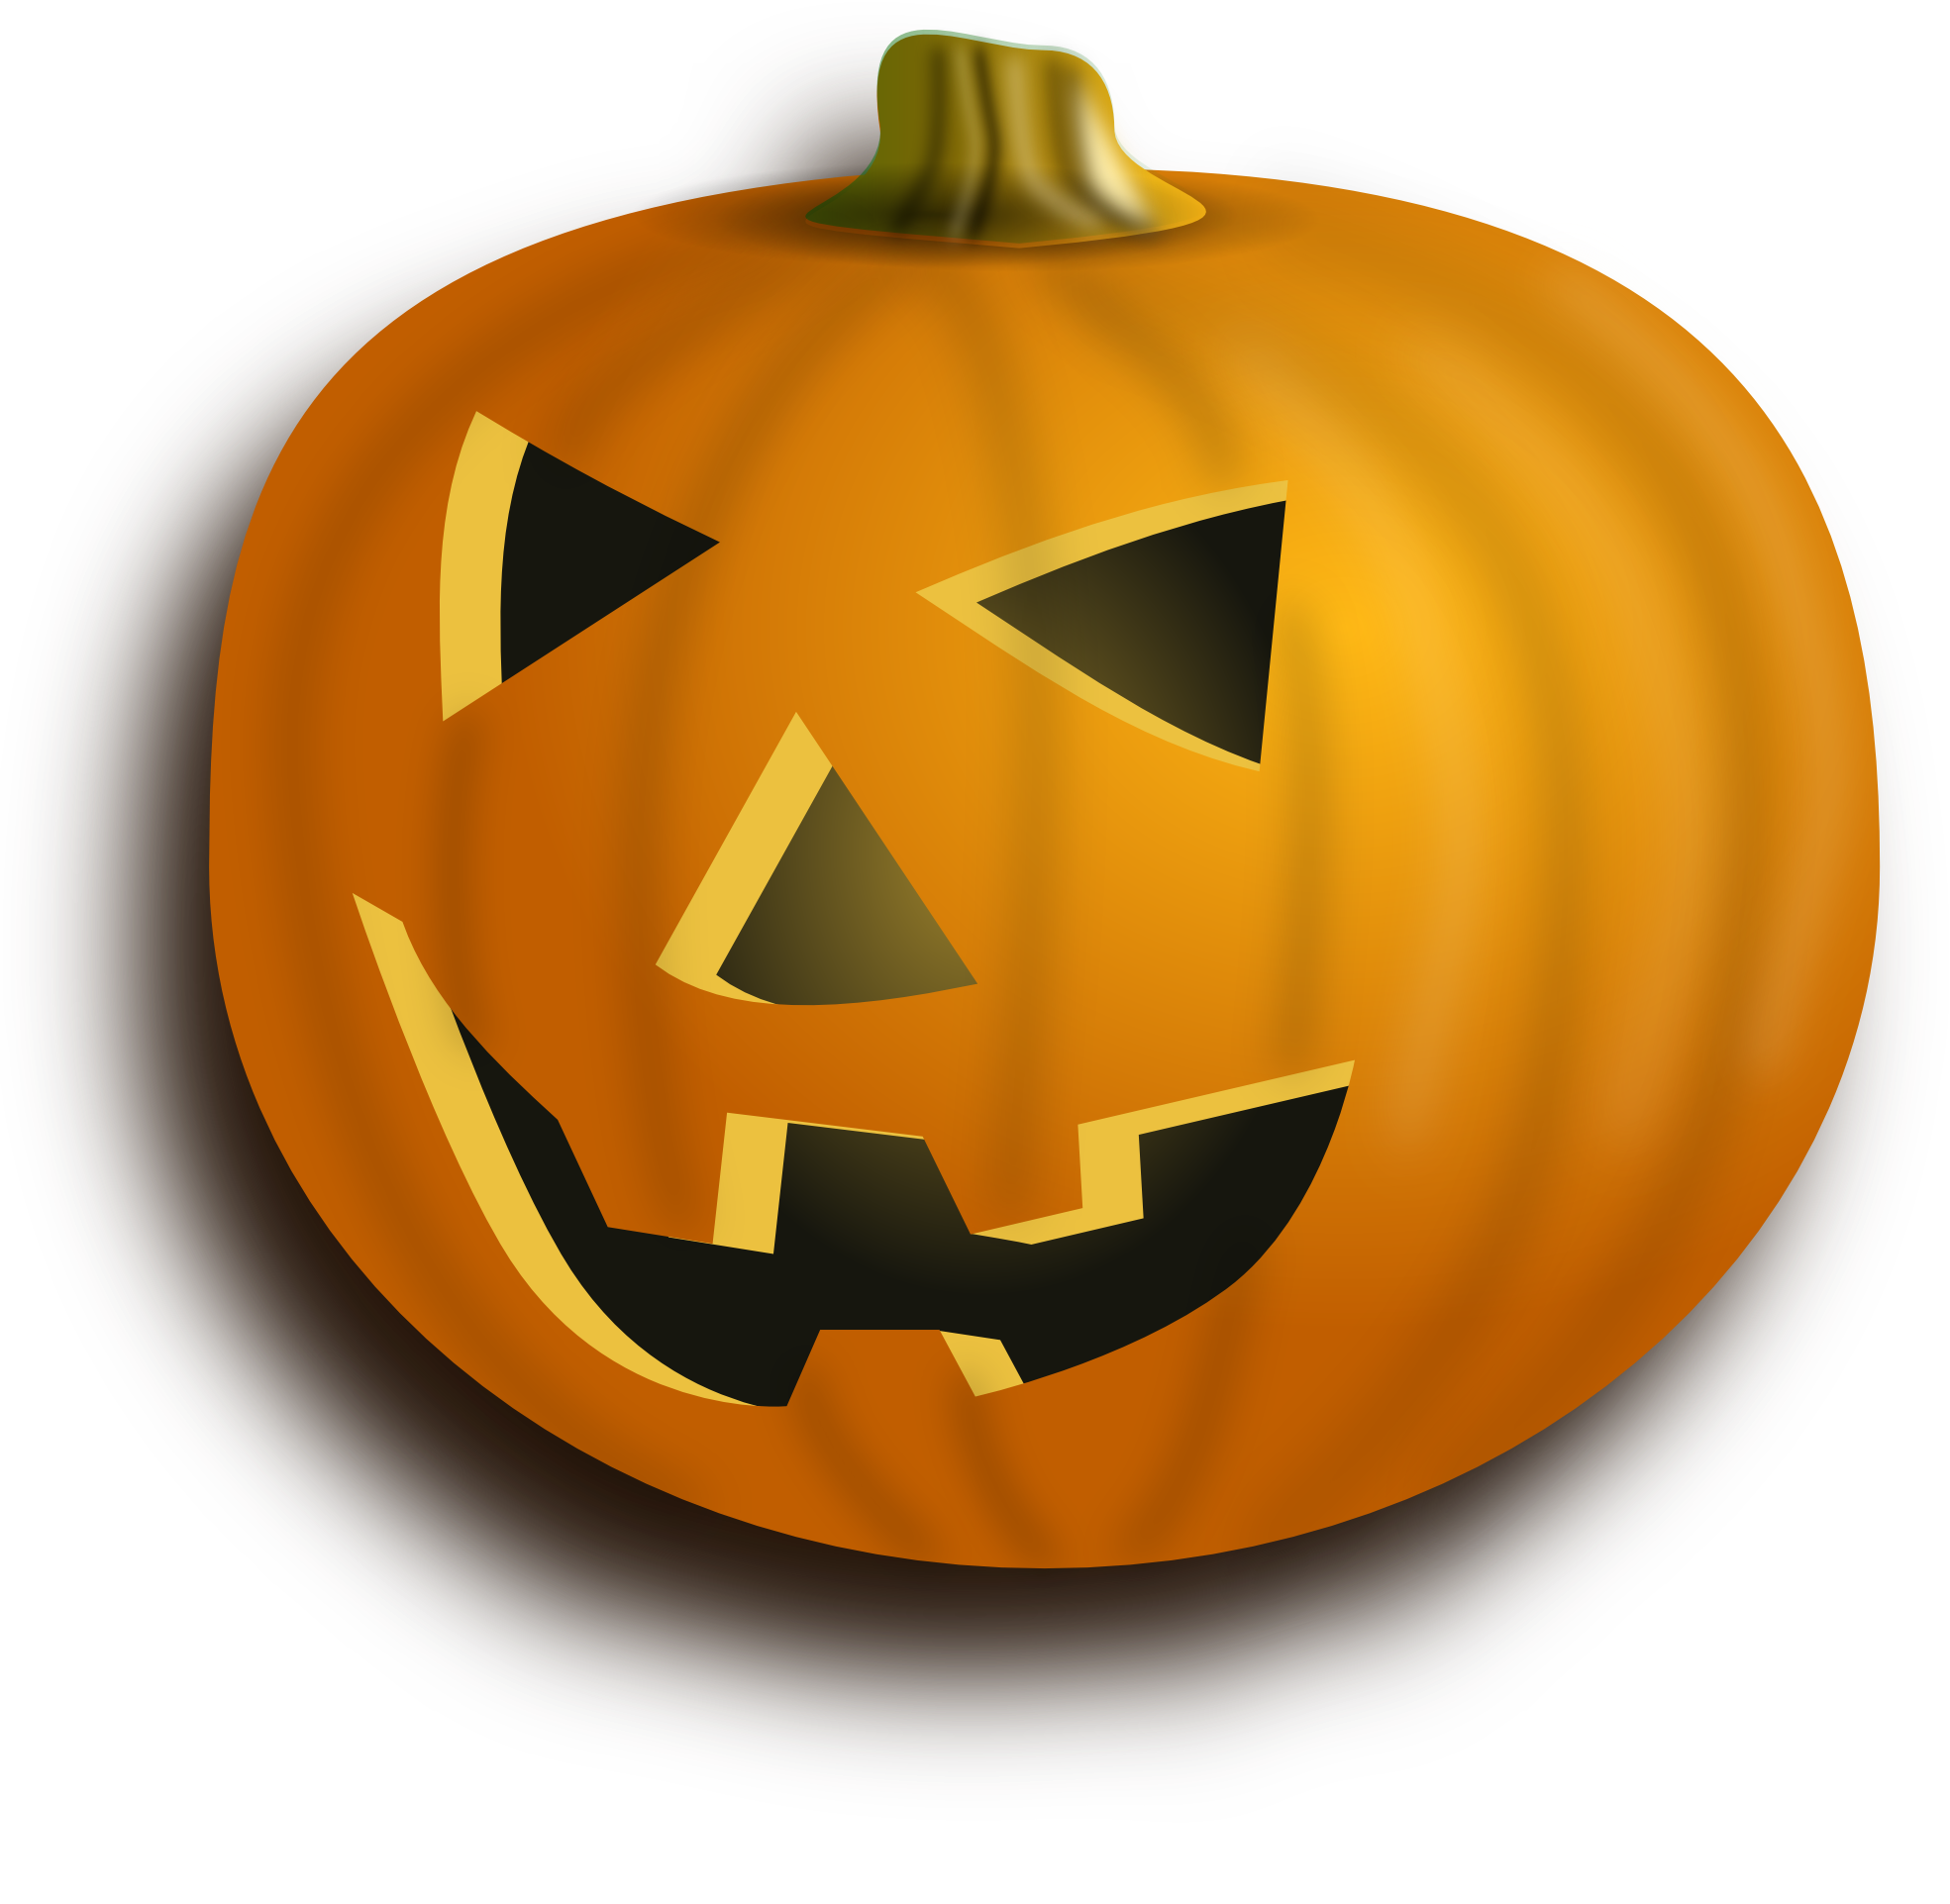 Vector pumpkins stock. Clipartist net clip art